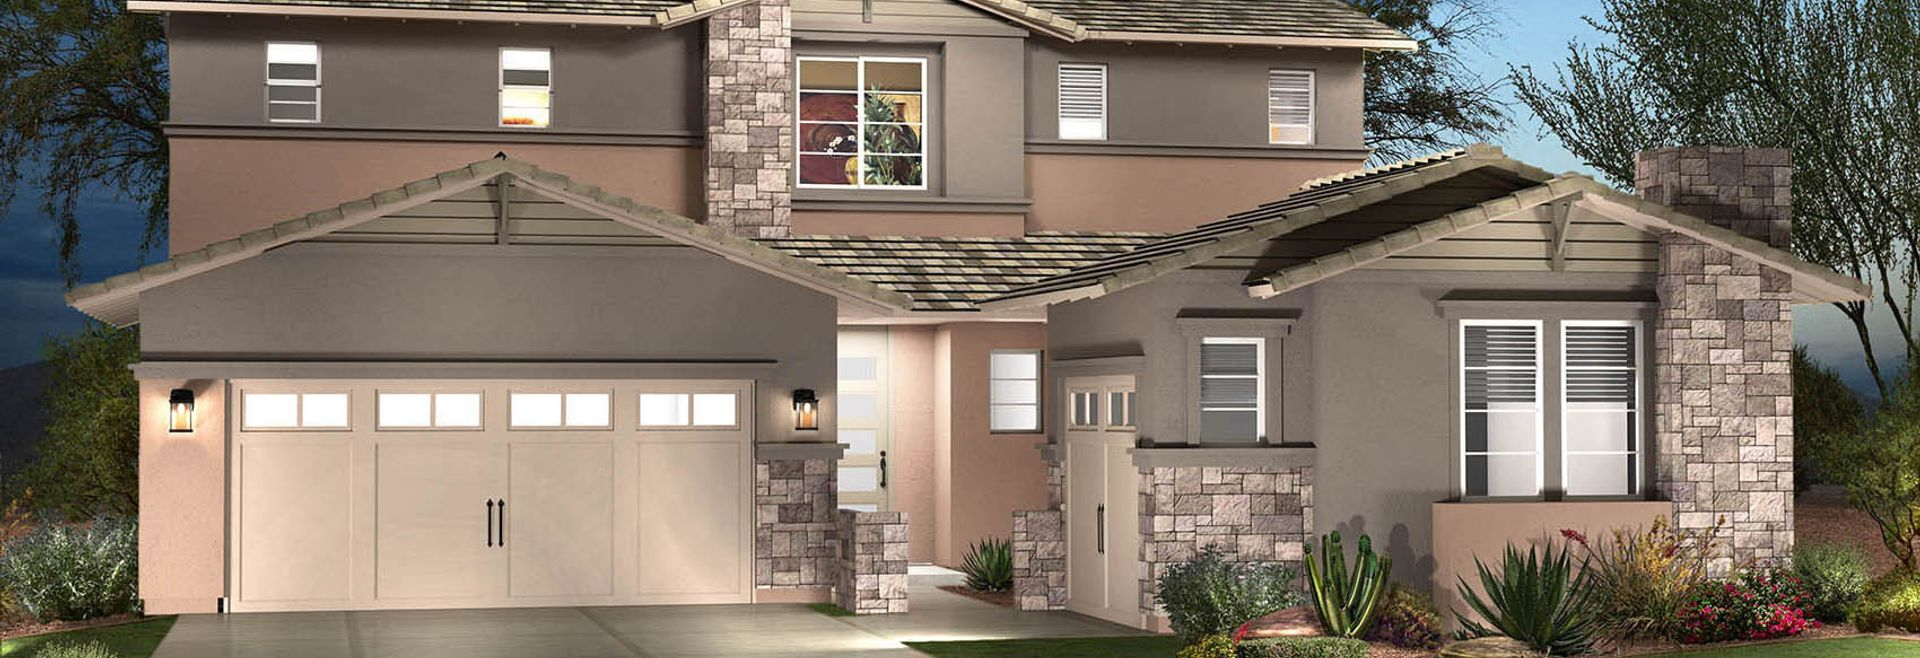 Inspire at Estrella by Shea Homes in Goodyear, Arizona